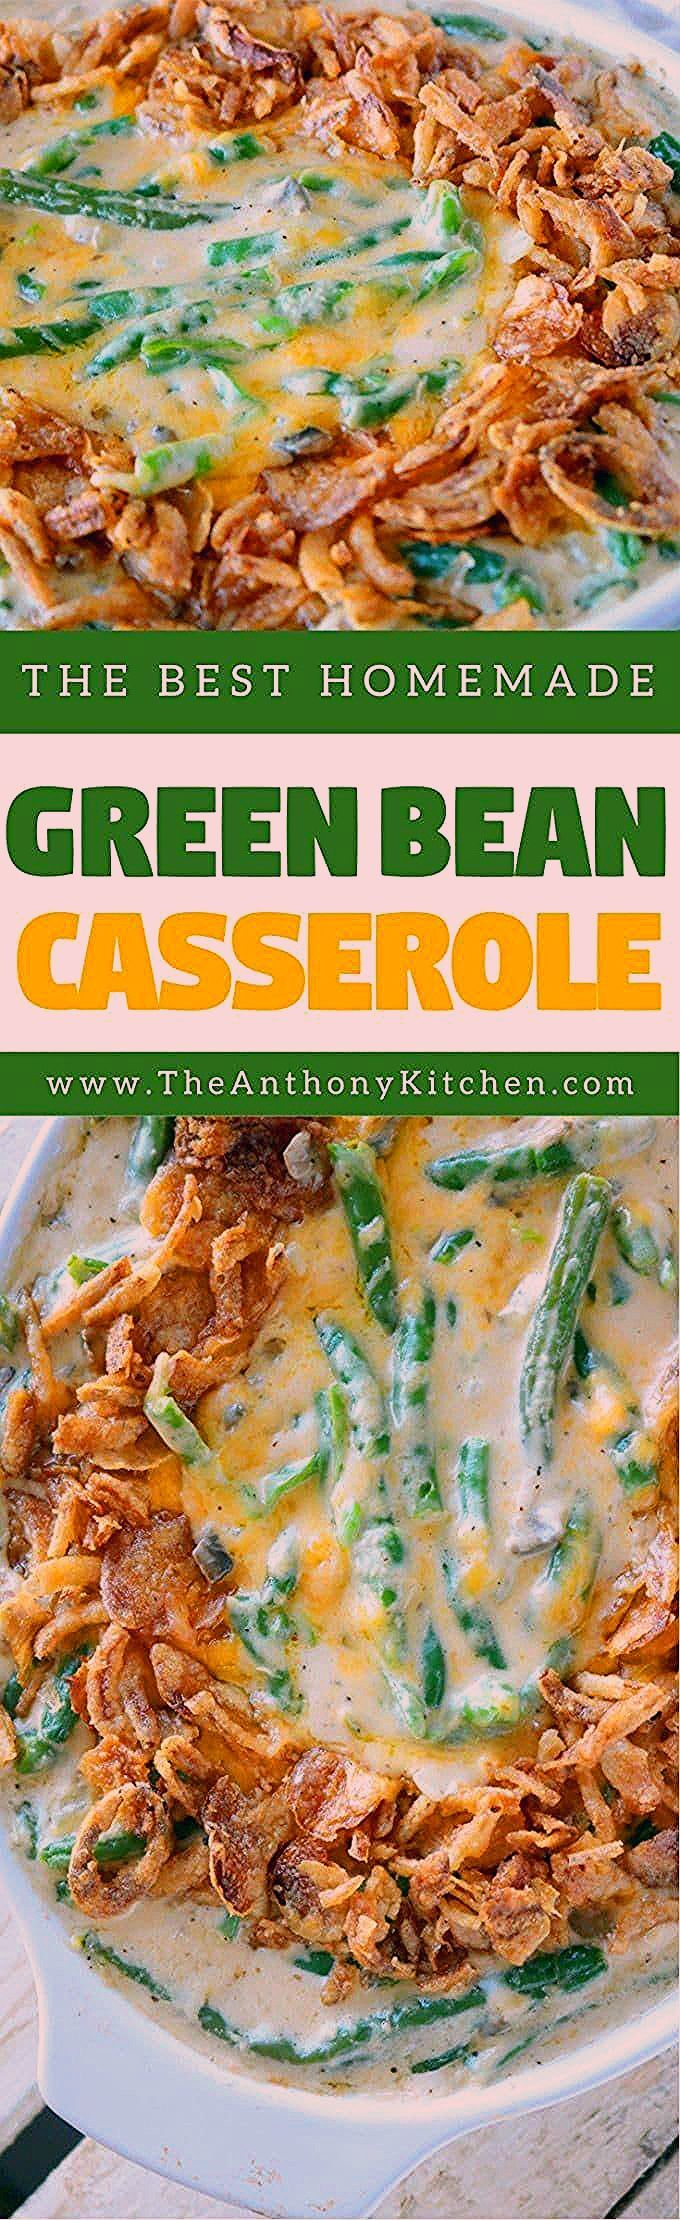 Fresh Green Bean Casserole with Cheese - Food Bloggers Central SHARING Board - #...